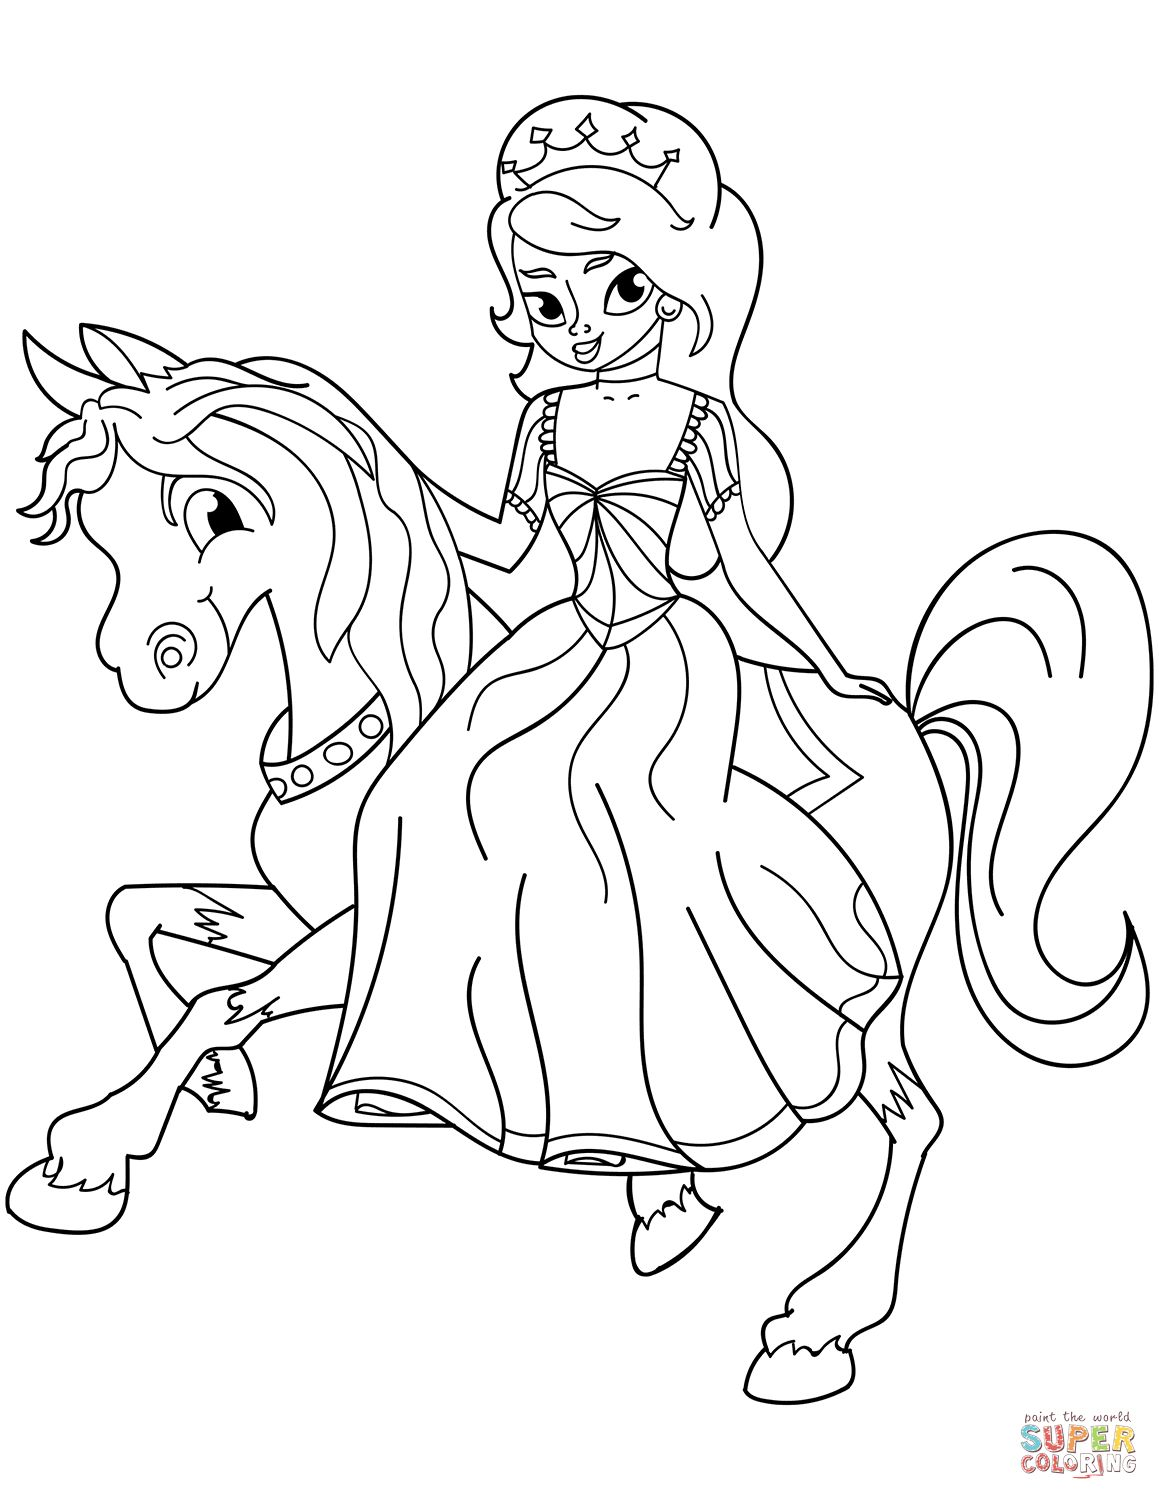 30 Great Picture Of Princess Coloring Page In 2020 Princess Coloring Pages Horse Coloring Pages Princess Coloring